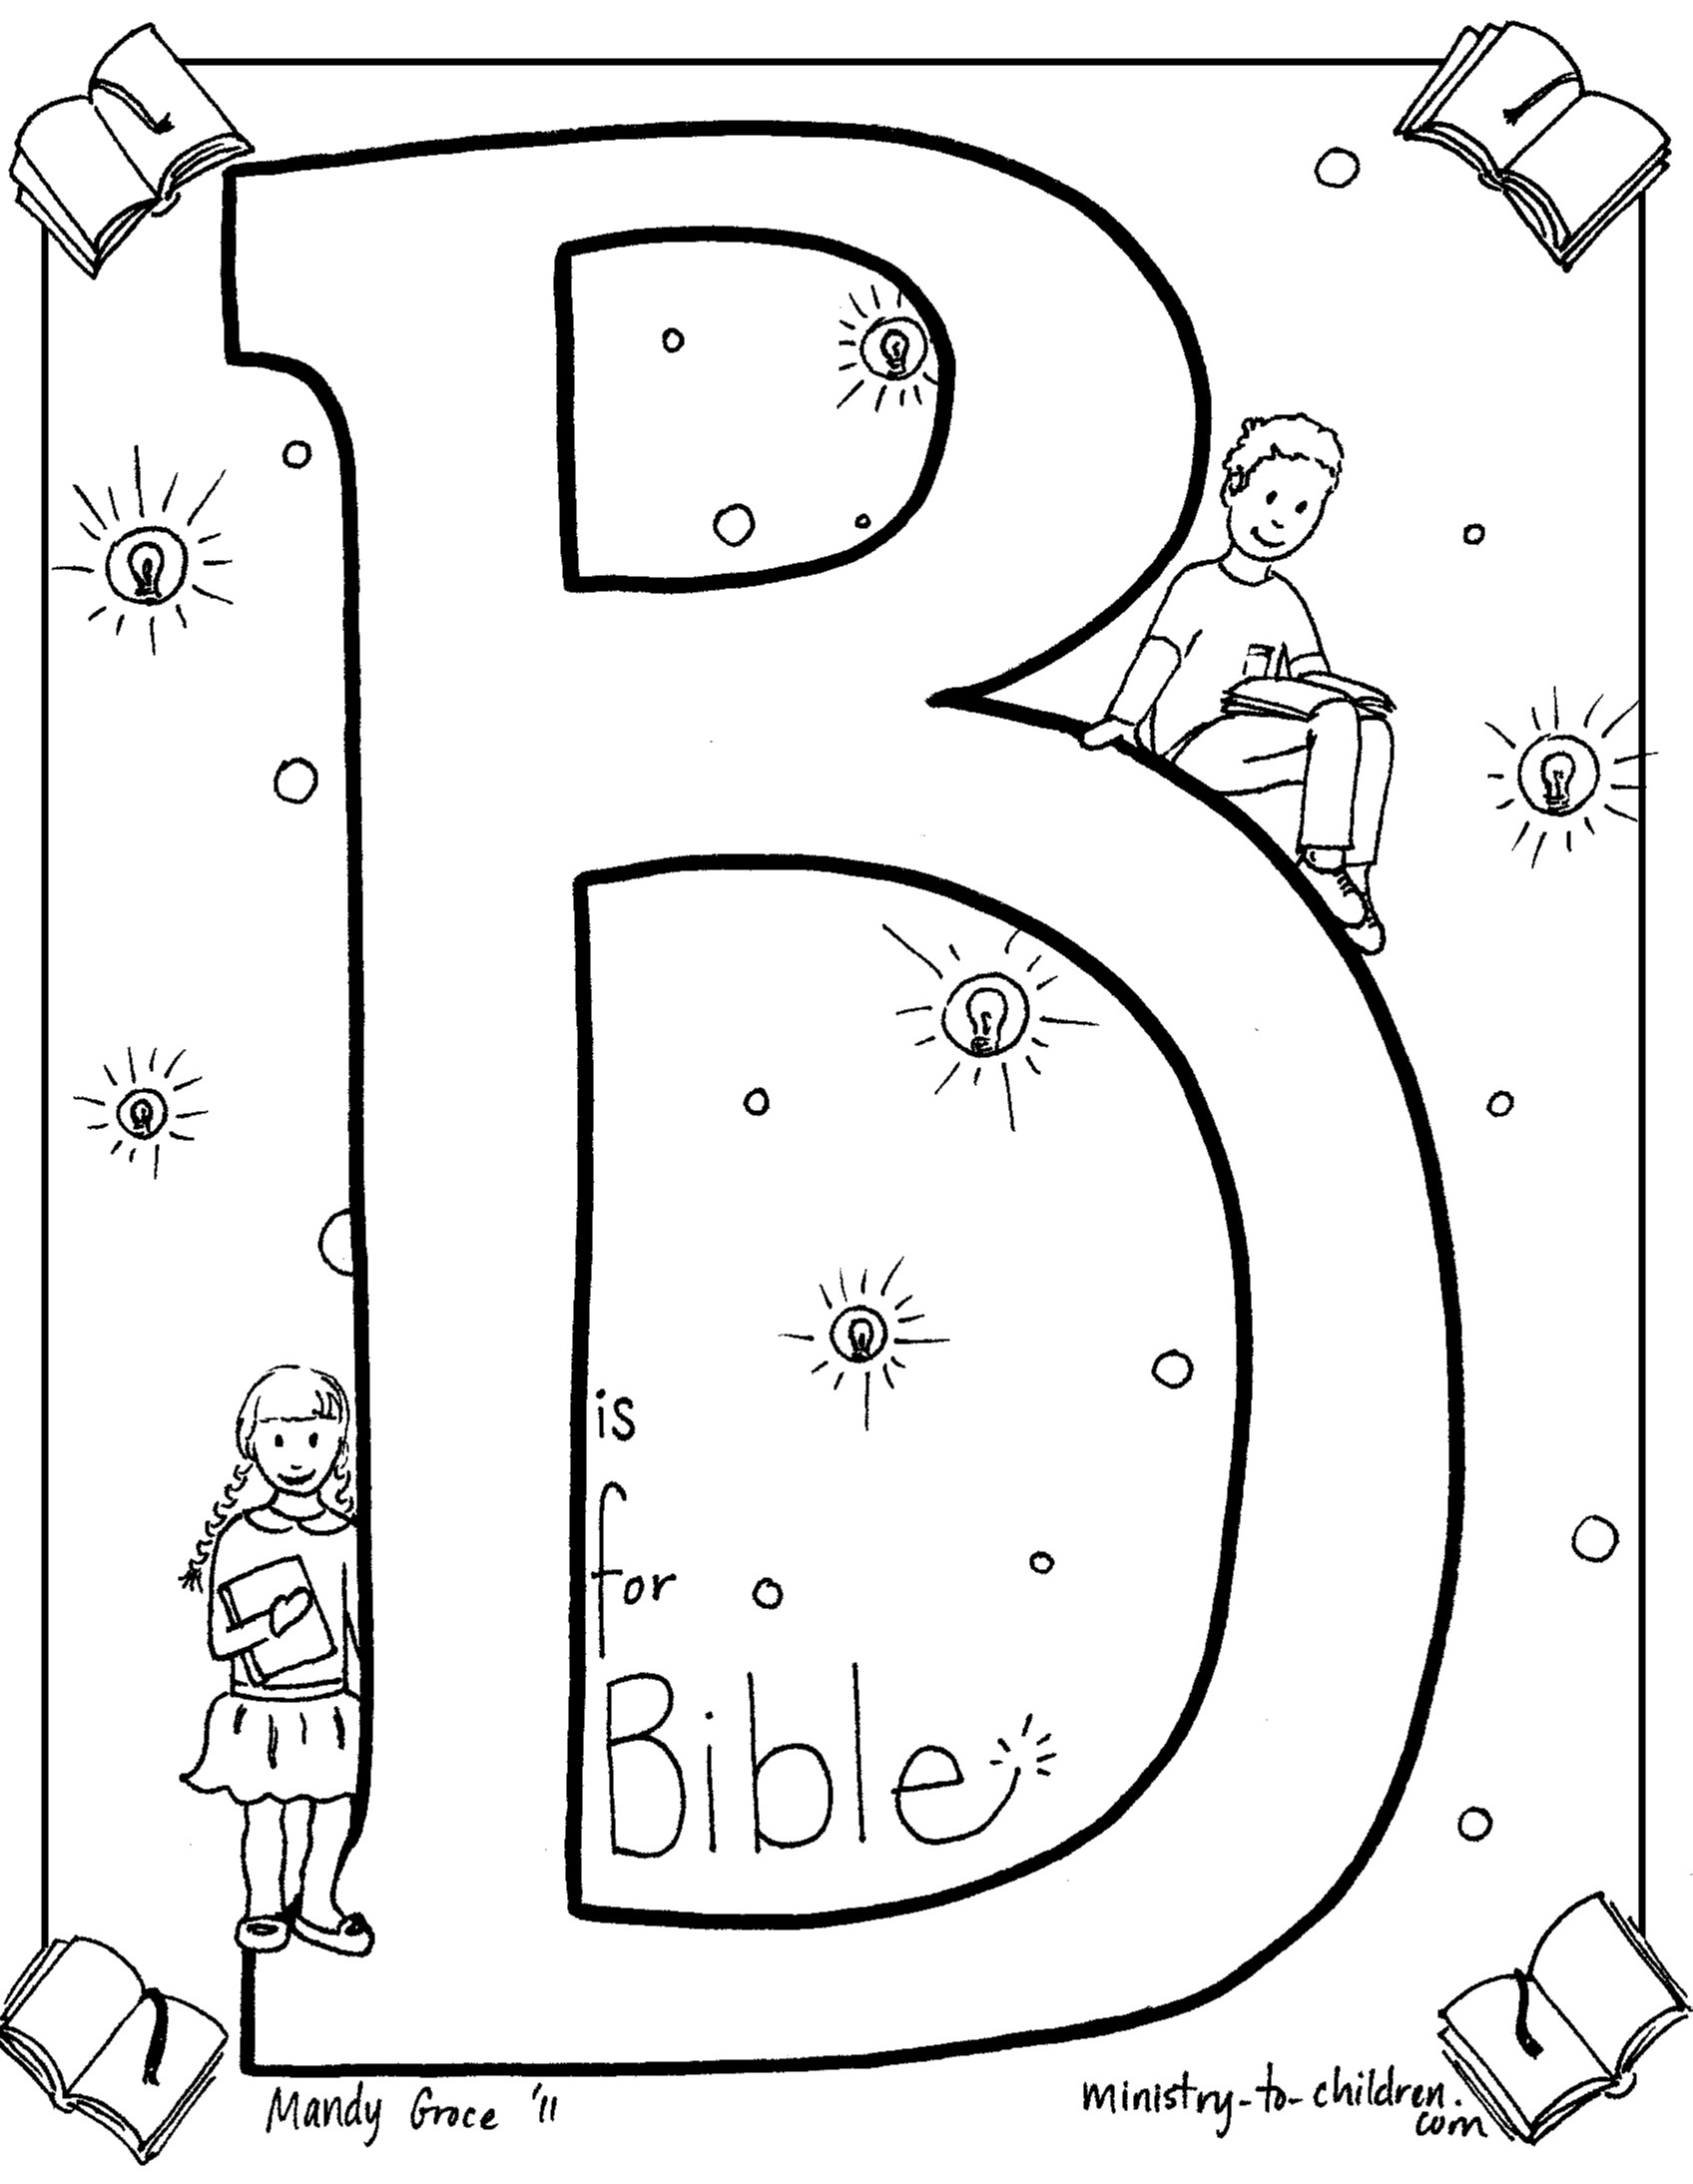 Faithful obedience 18 bible coloring pages clip art for Printable bible coloring pages kids